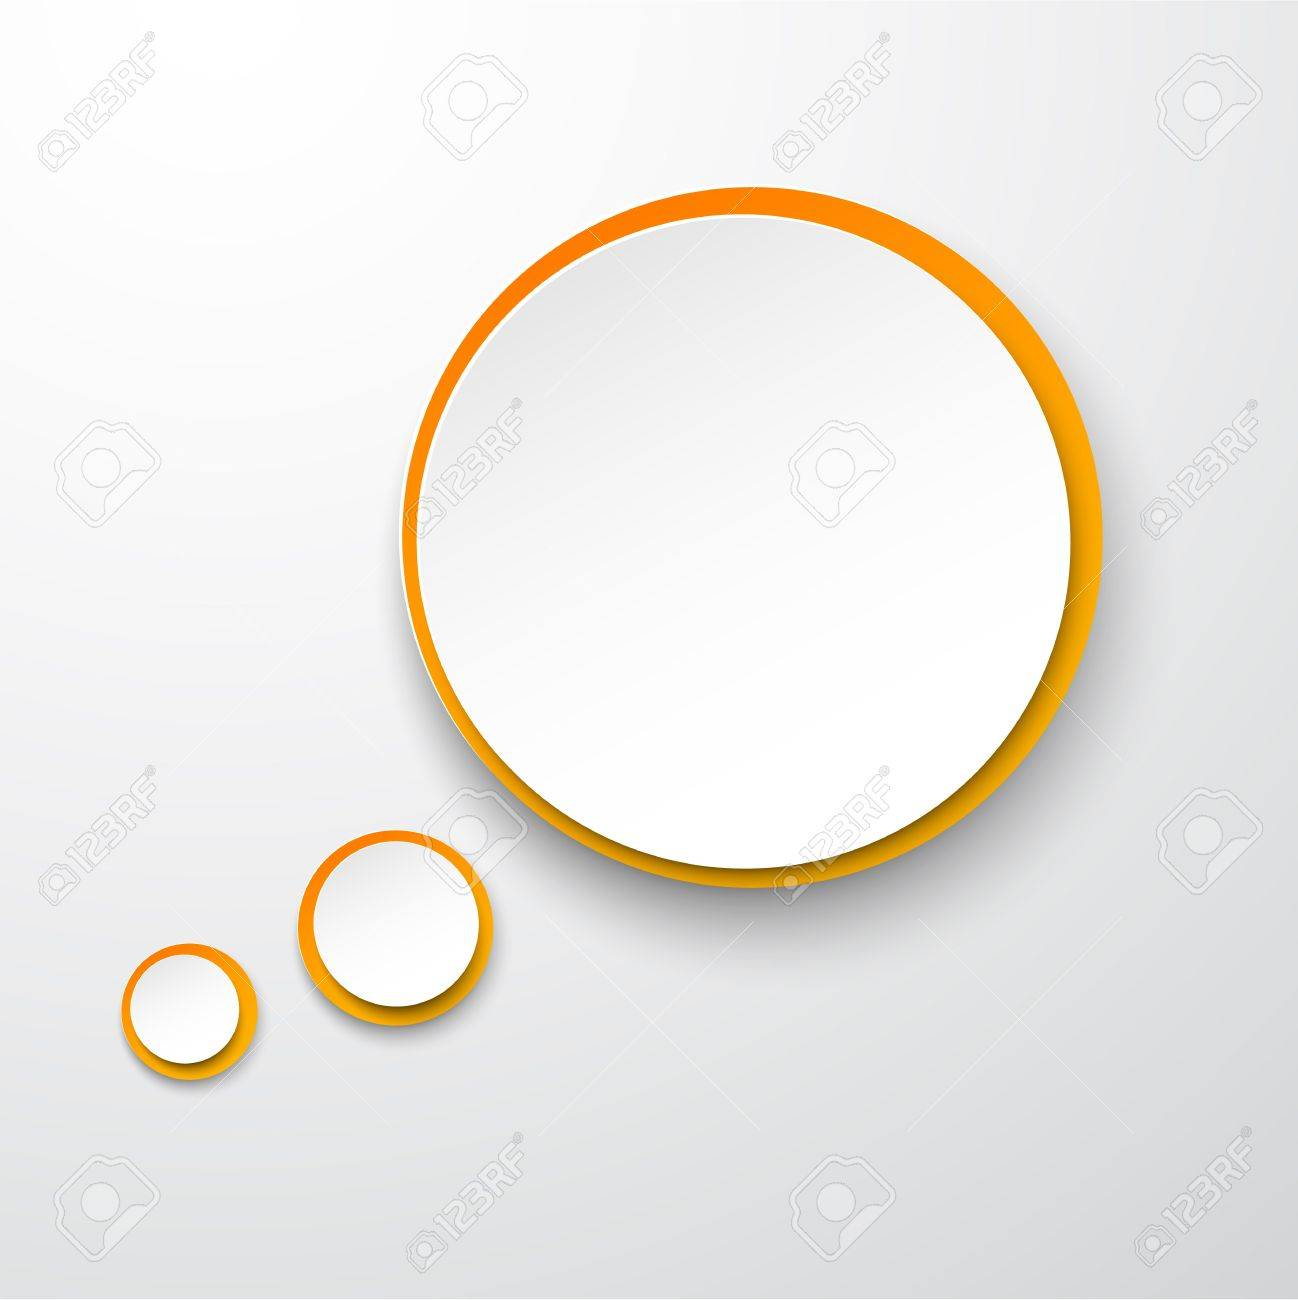 Vector illustration of white and orange paper round speech bubble Stock Vector - 17602307